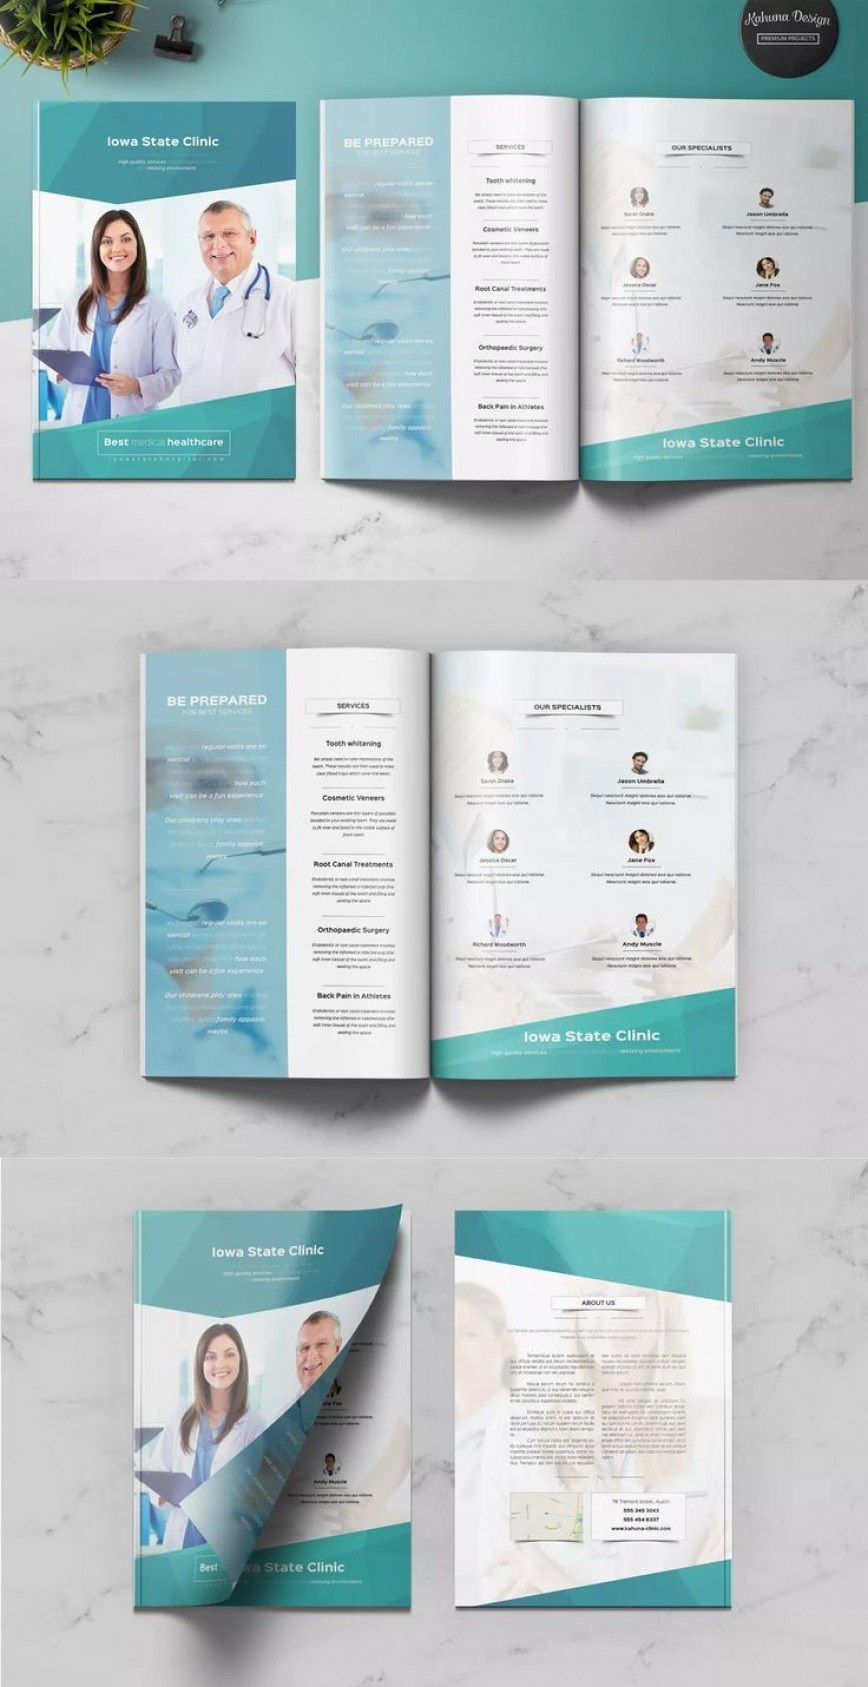 007 Remarkable Download Brochure Template For Microsoft Word 2007 High Def  FreeFull